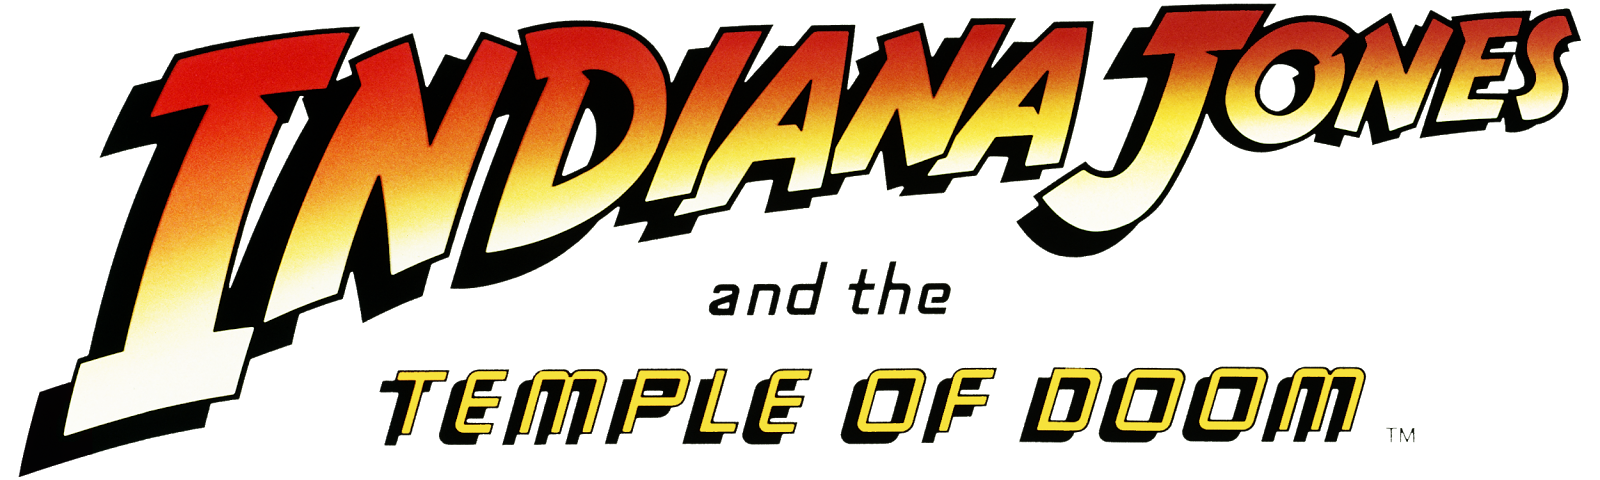 indiana jones and the temple of doom ultimate location